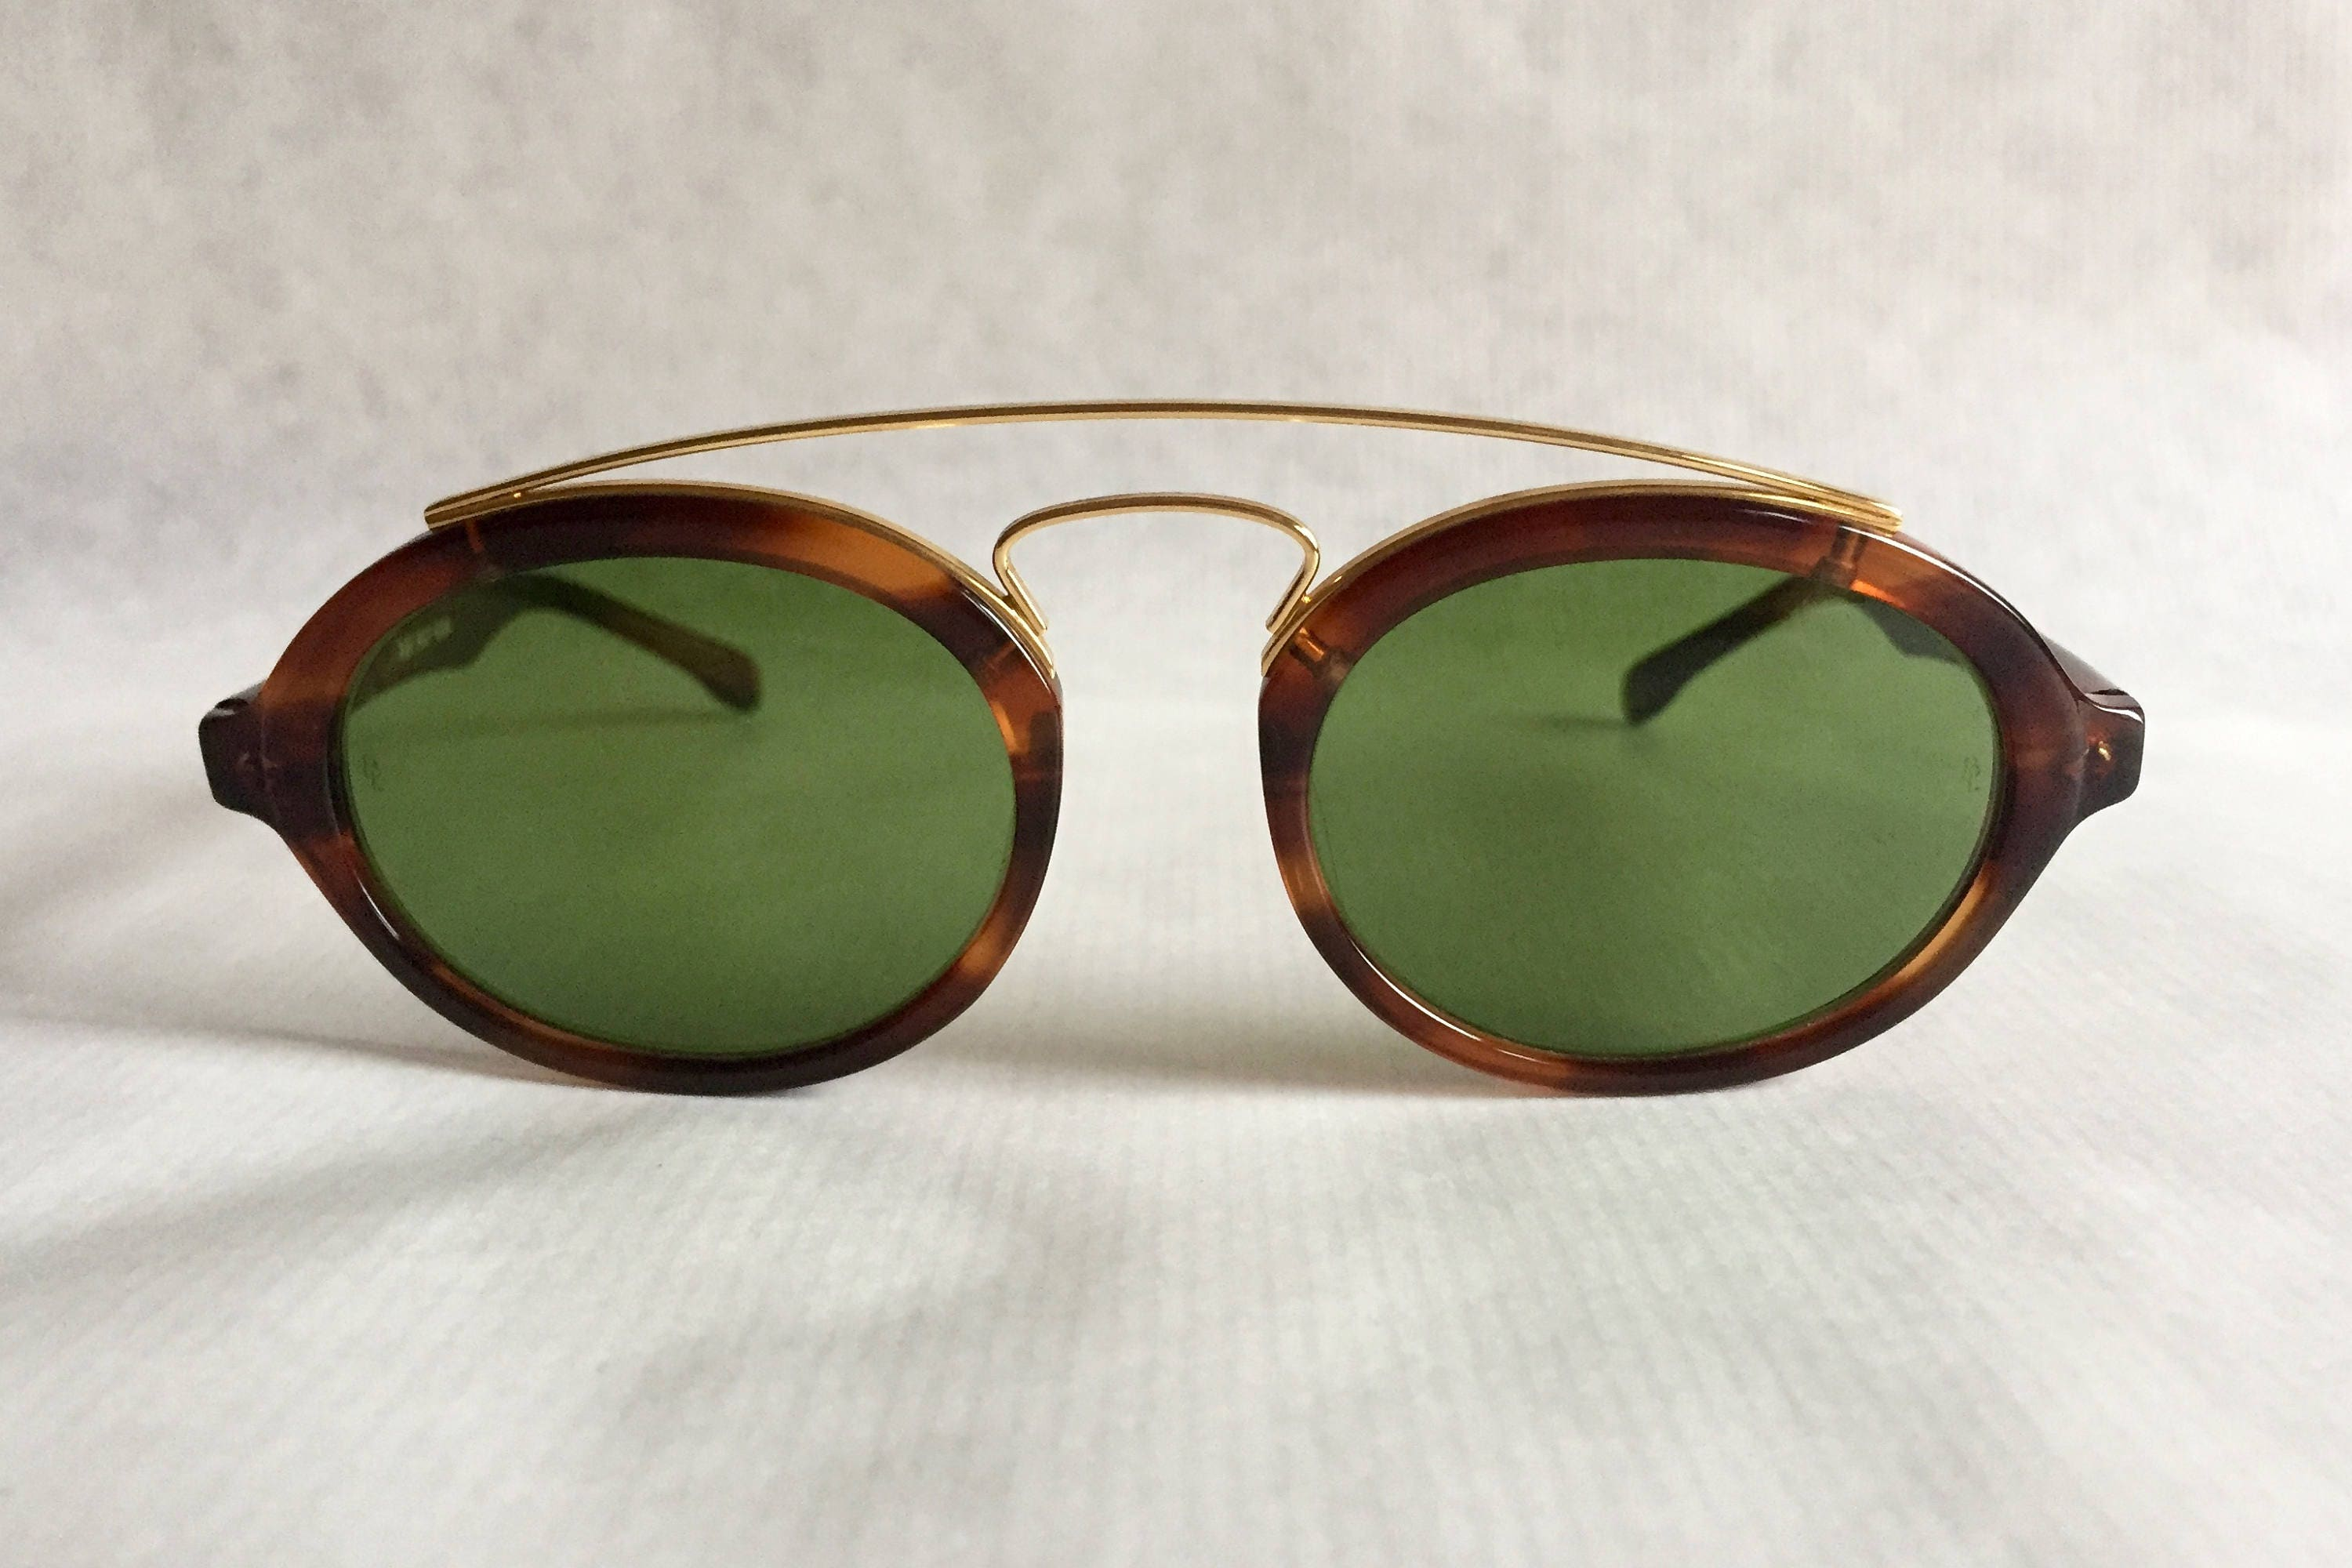 6c8ab0cf71fb86 Ray-Ban Gatsby Style 6 by Bausch   Lomb Vintage Sunglasses New Unworn  Deadstock. gallery photo ...